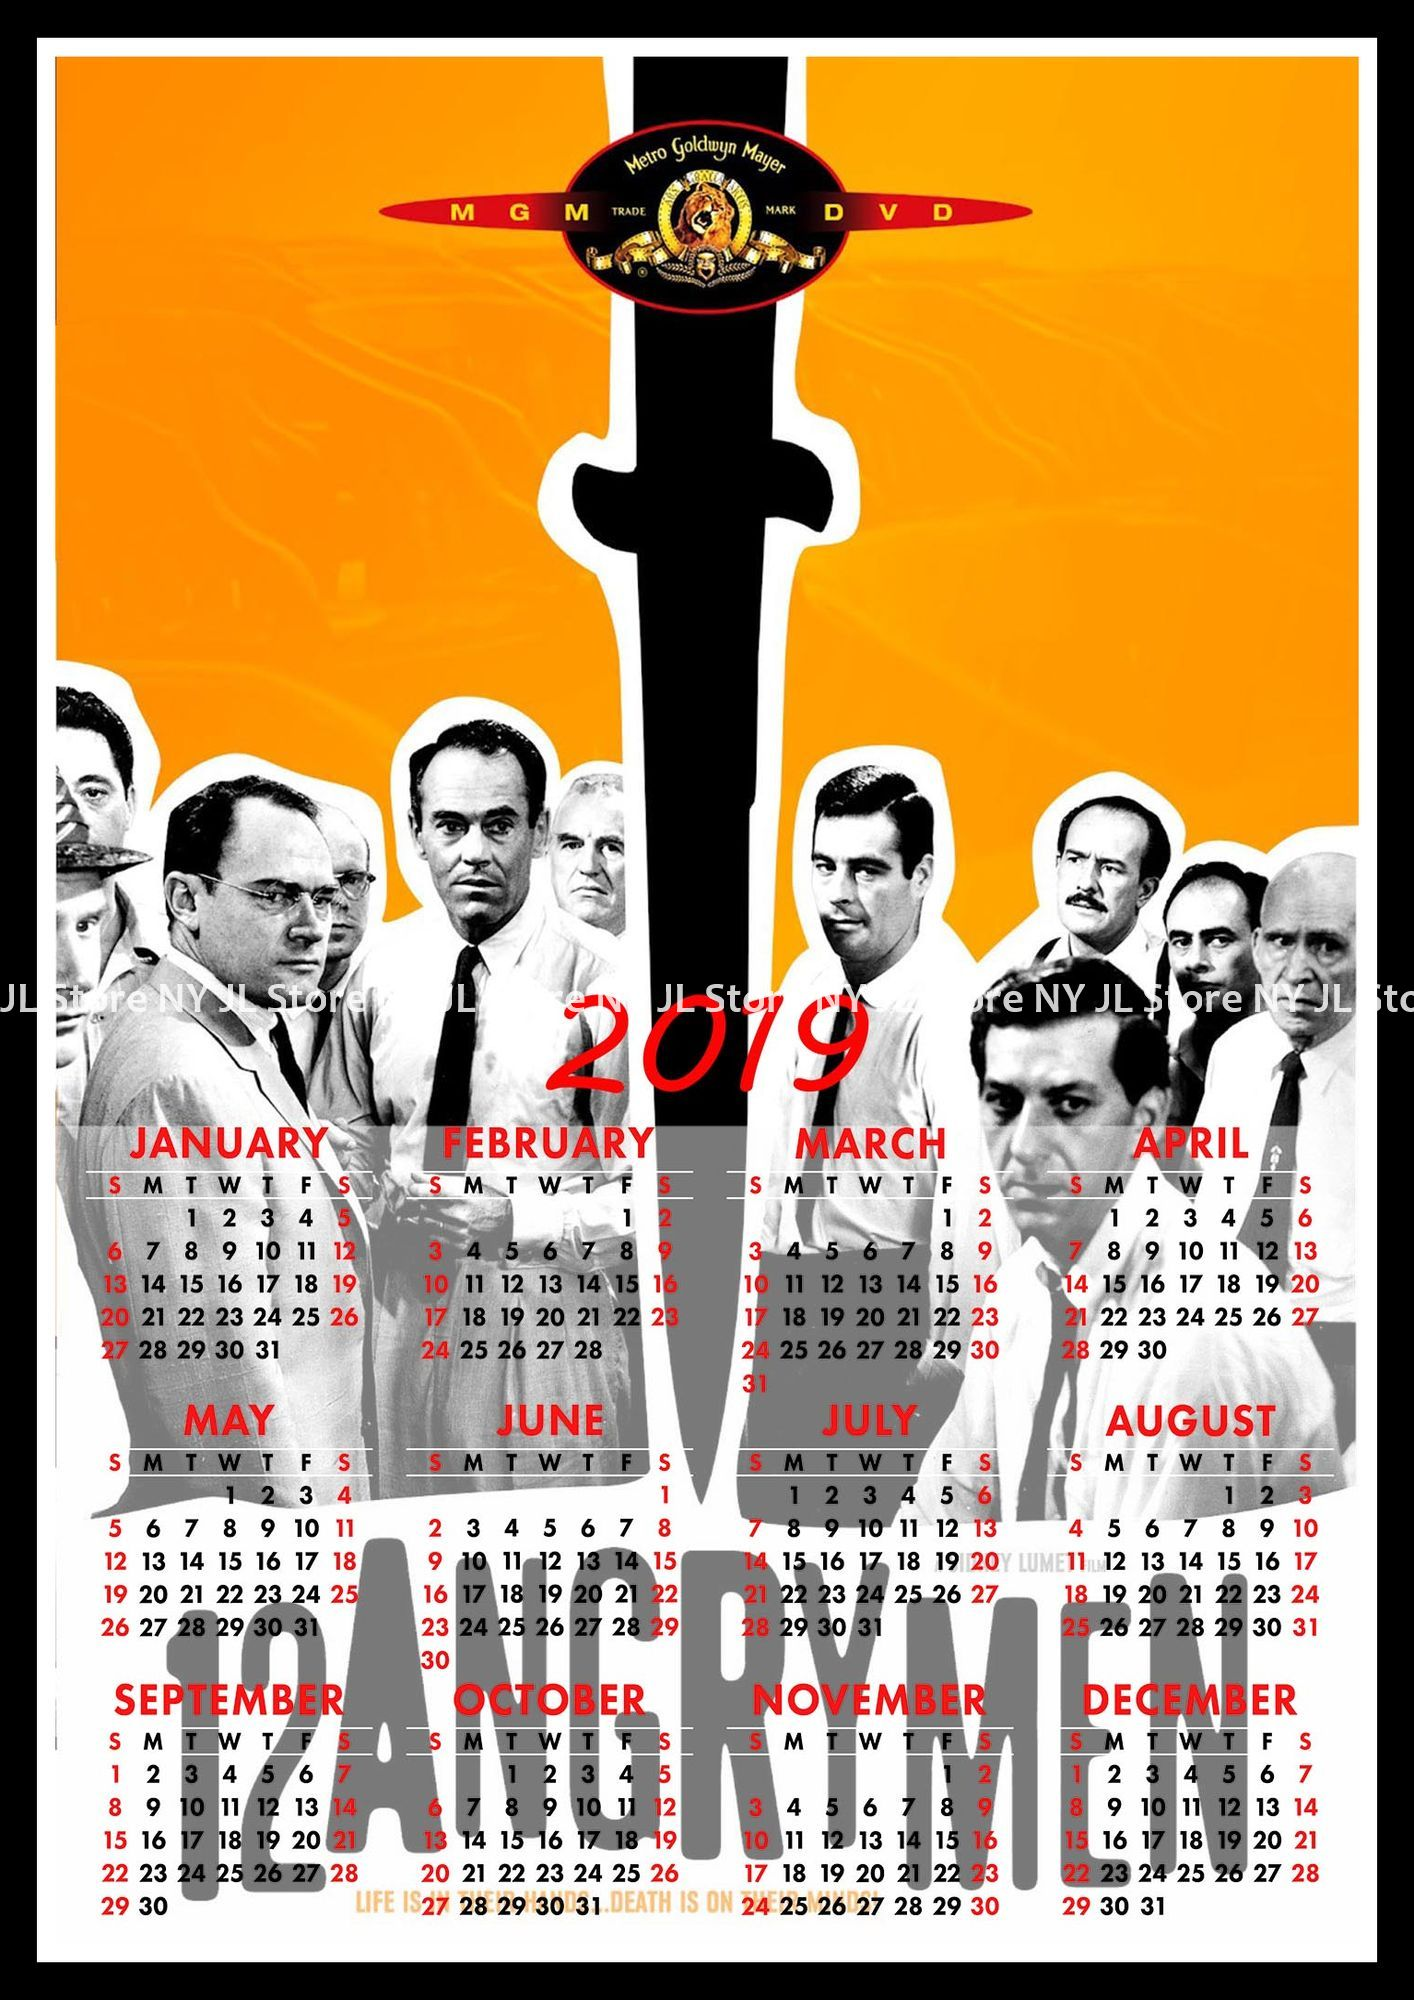 12 Angry Men 2019 Calendar Home Furnishing Decorative White Coated Paper Poster Wall Sticker Decora In Stickers From Garden On